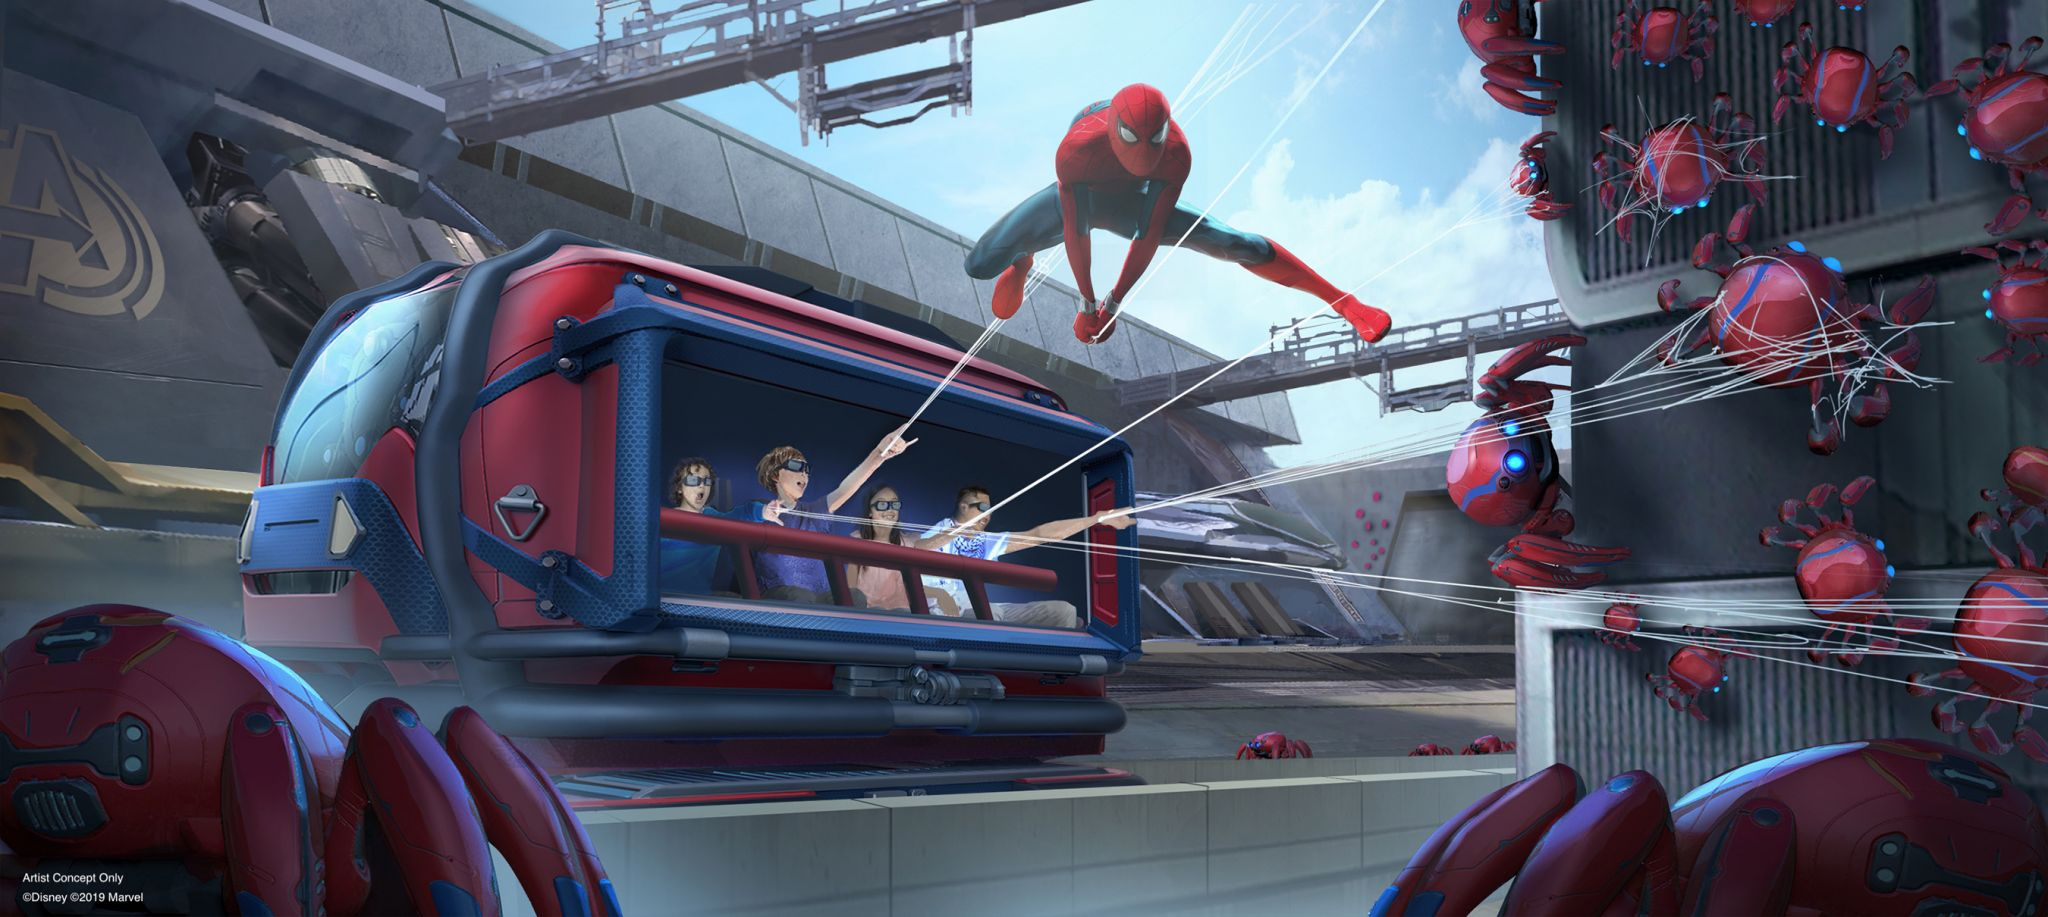 You'll be able to 'shoot webs out of your wrist' like Spider-Man in Disneyland's Marvel land